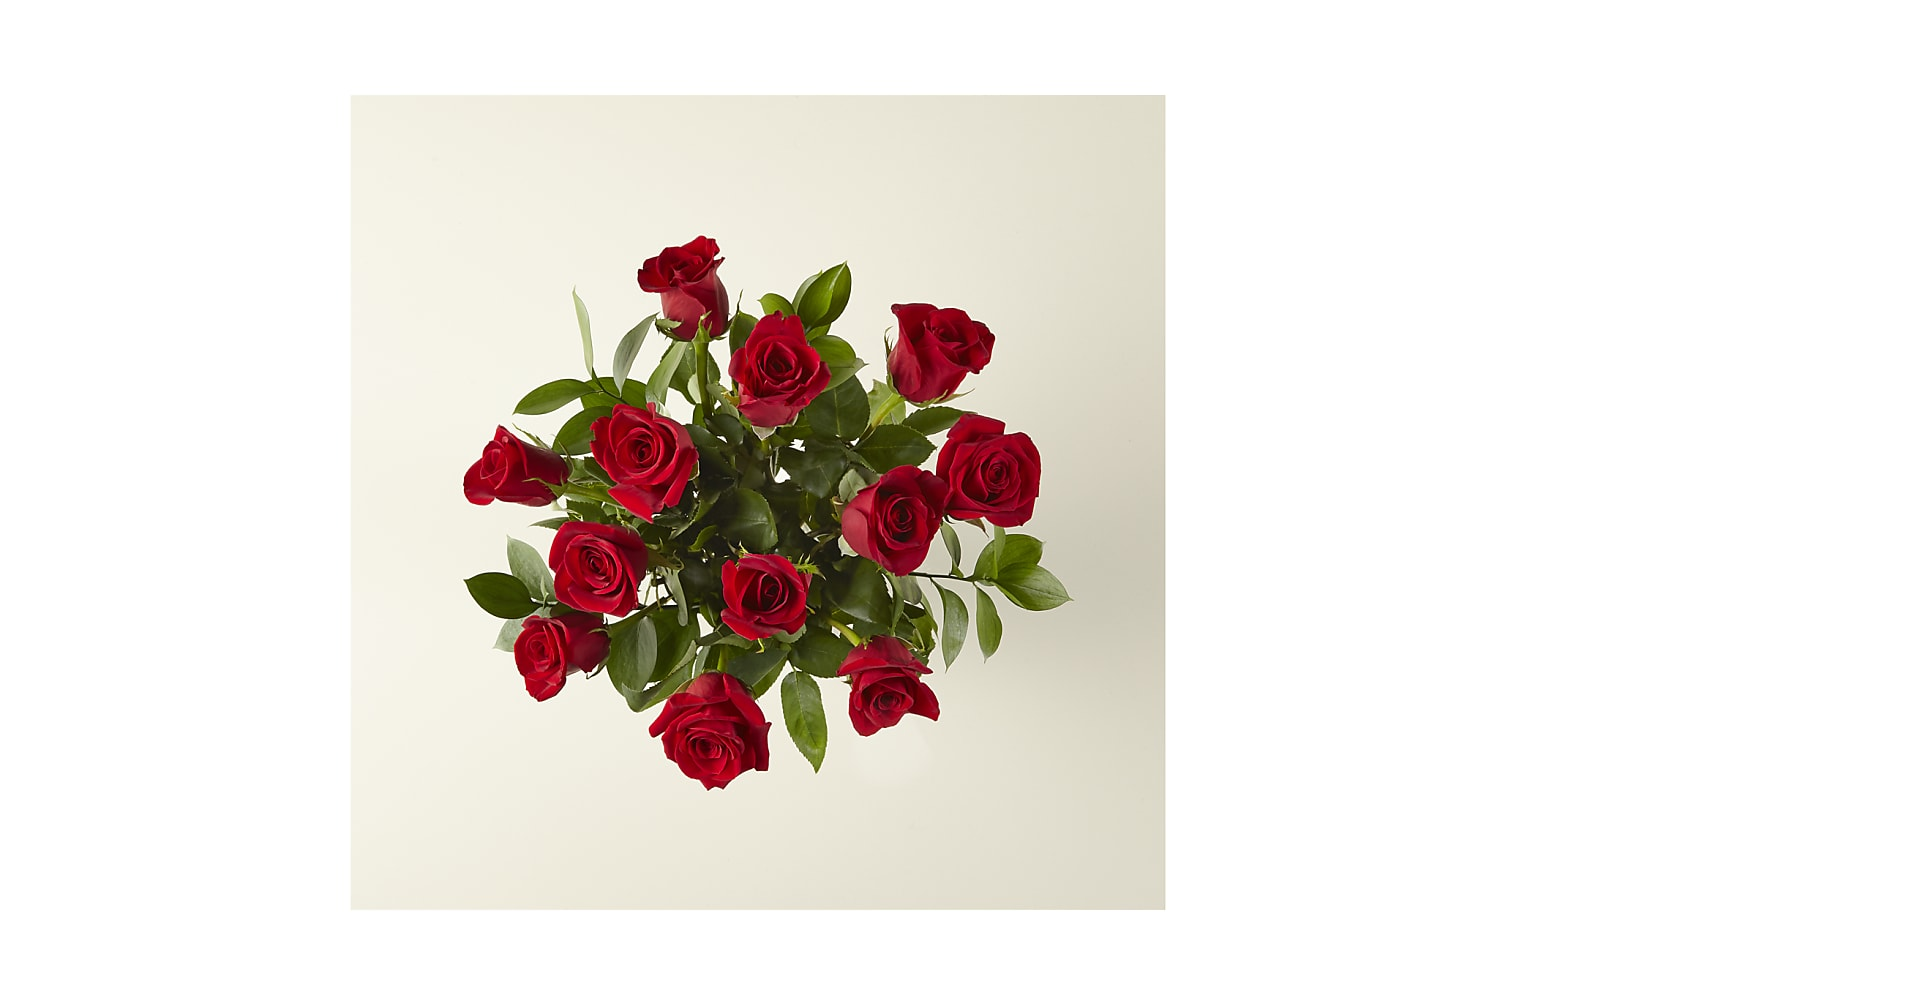 12 Red Roses, No Vase - Image 3 Of 3